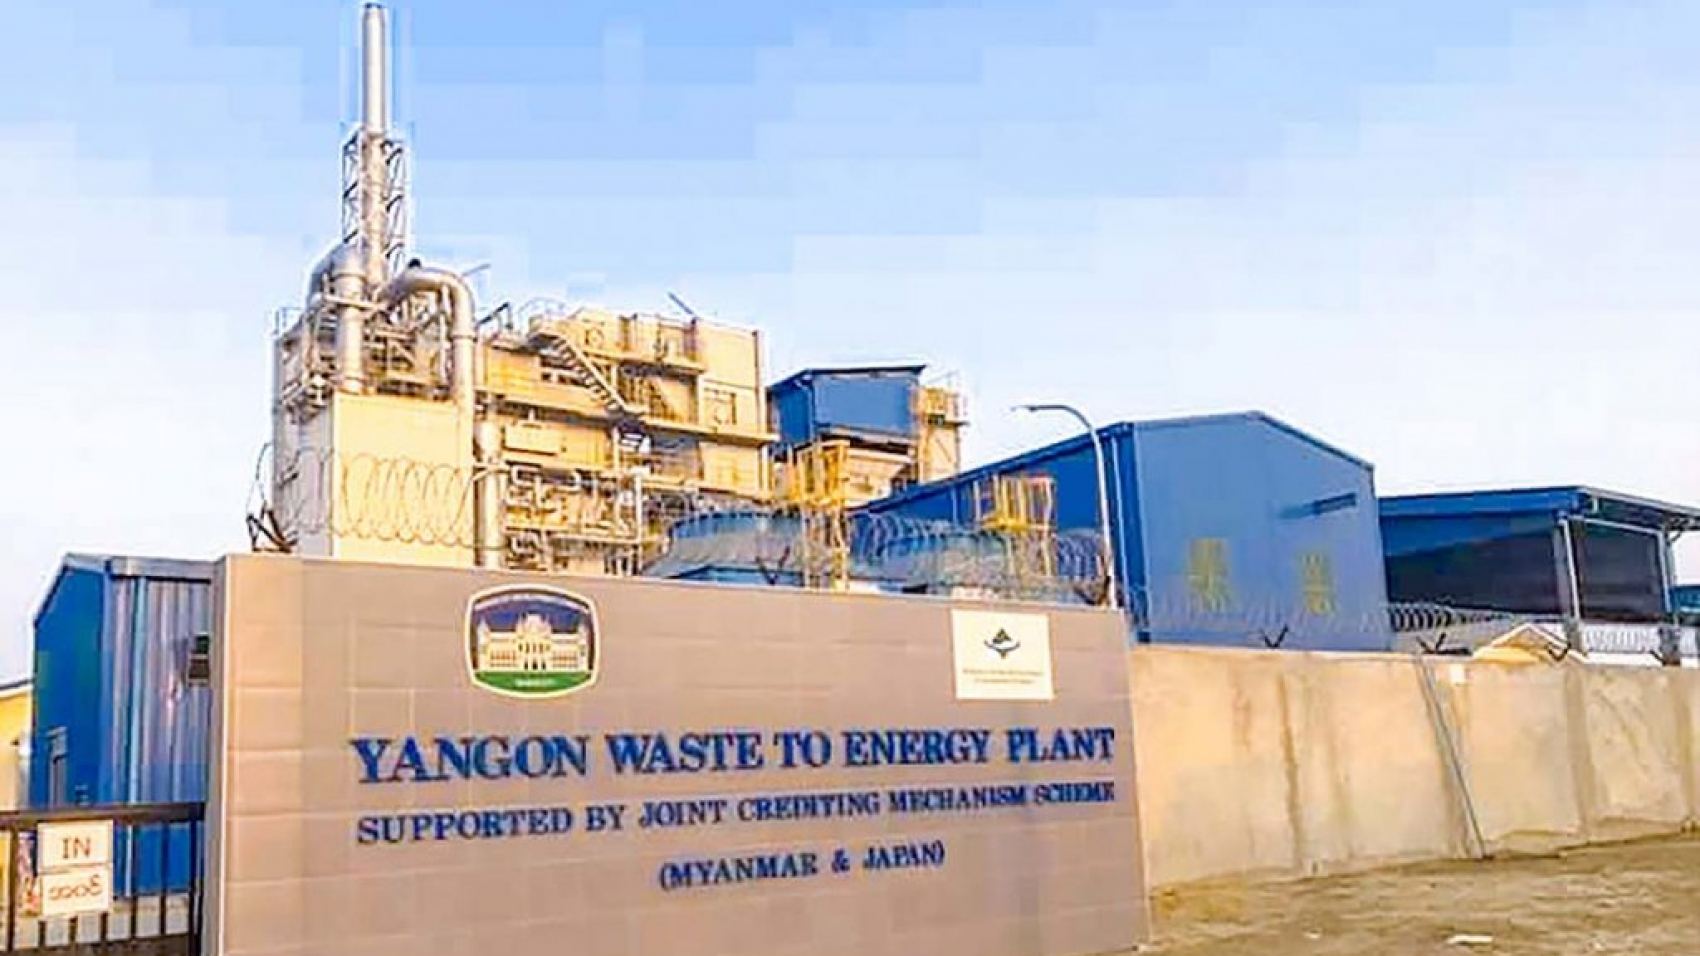 ygn-waste-to-energy-sskm-1024x583